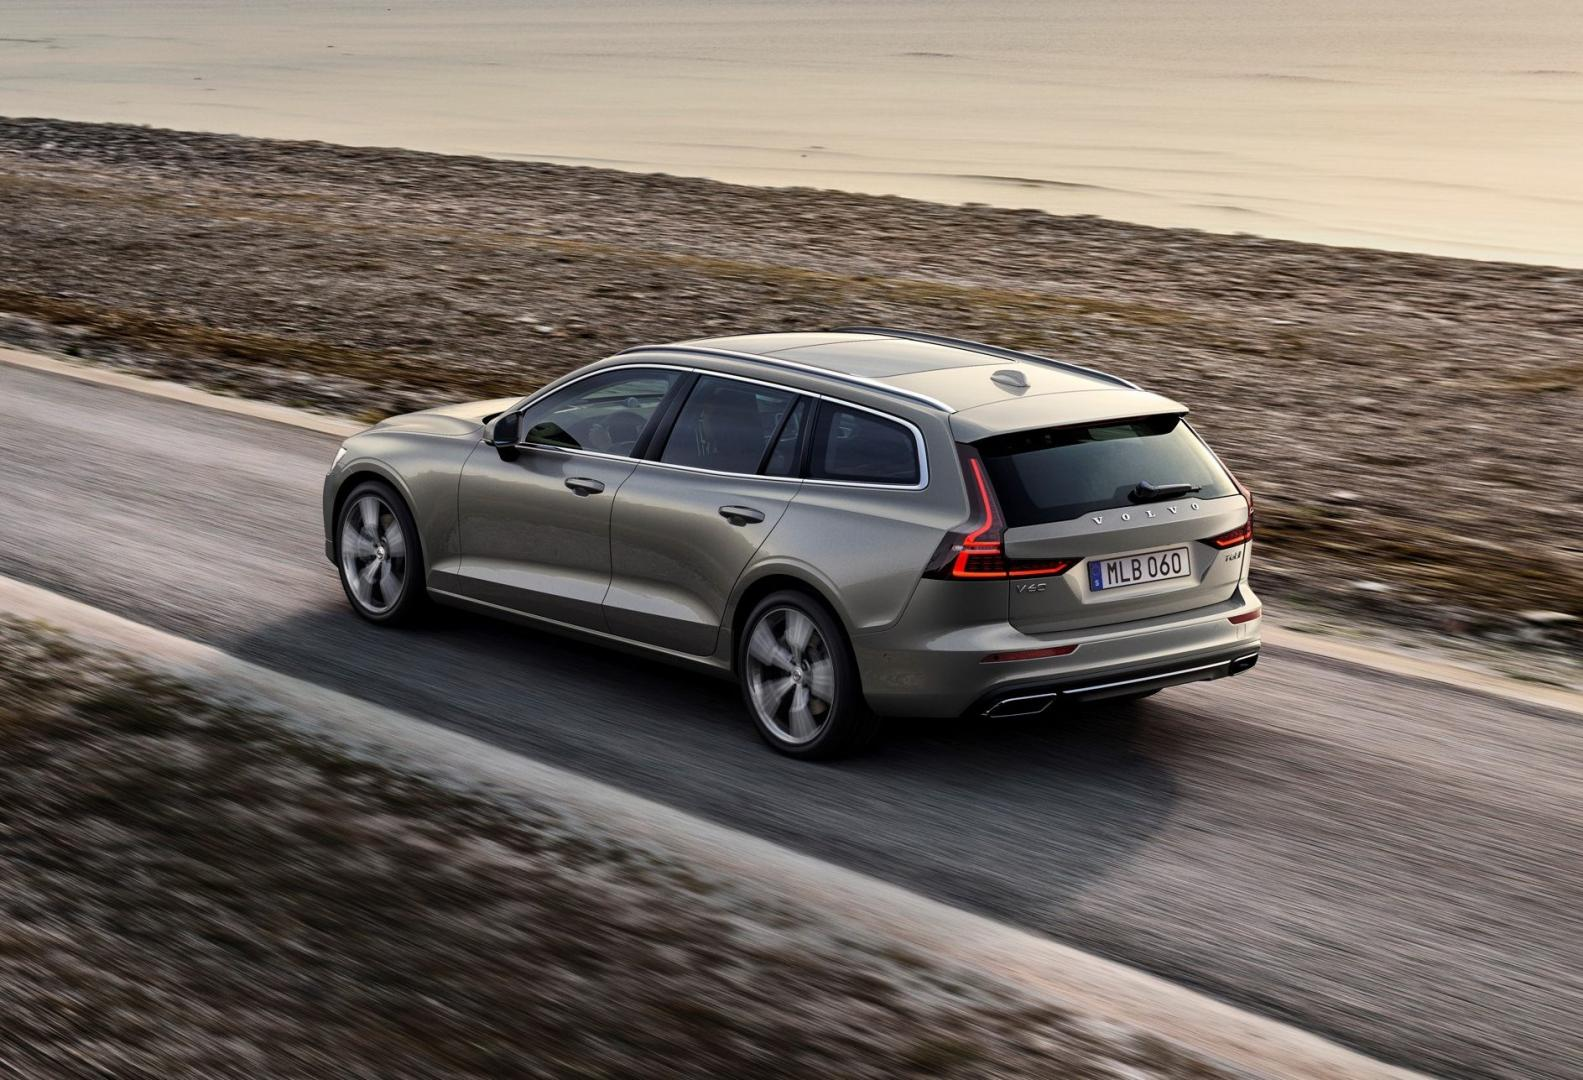 de nieuwe volvo v60 2018 prijzen en specificaties topgear. Black Bedroom Furniture Sets. Home Design Ideas